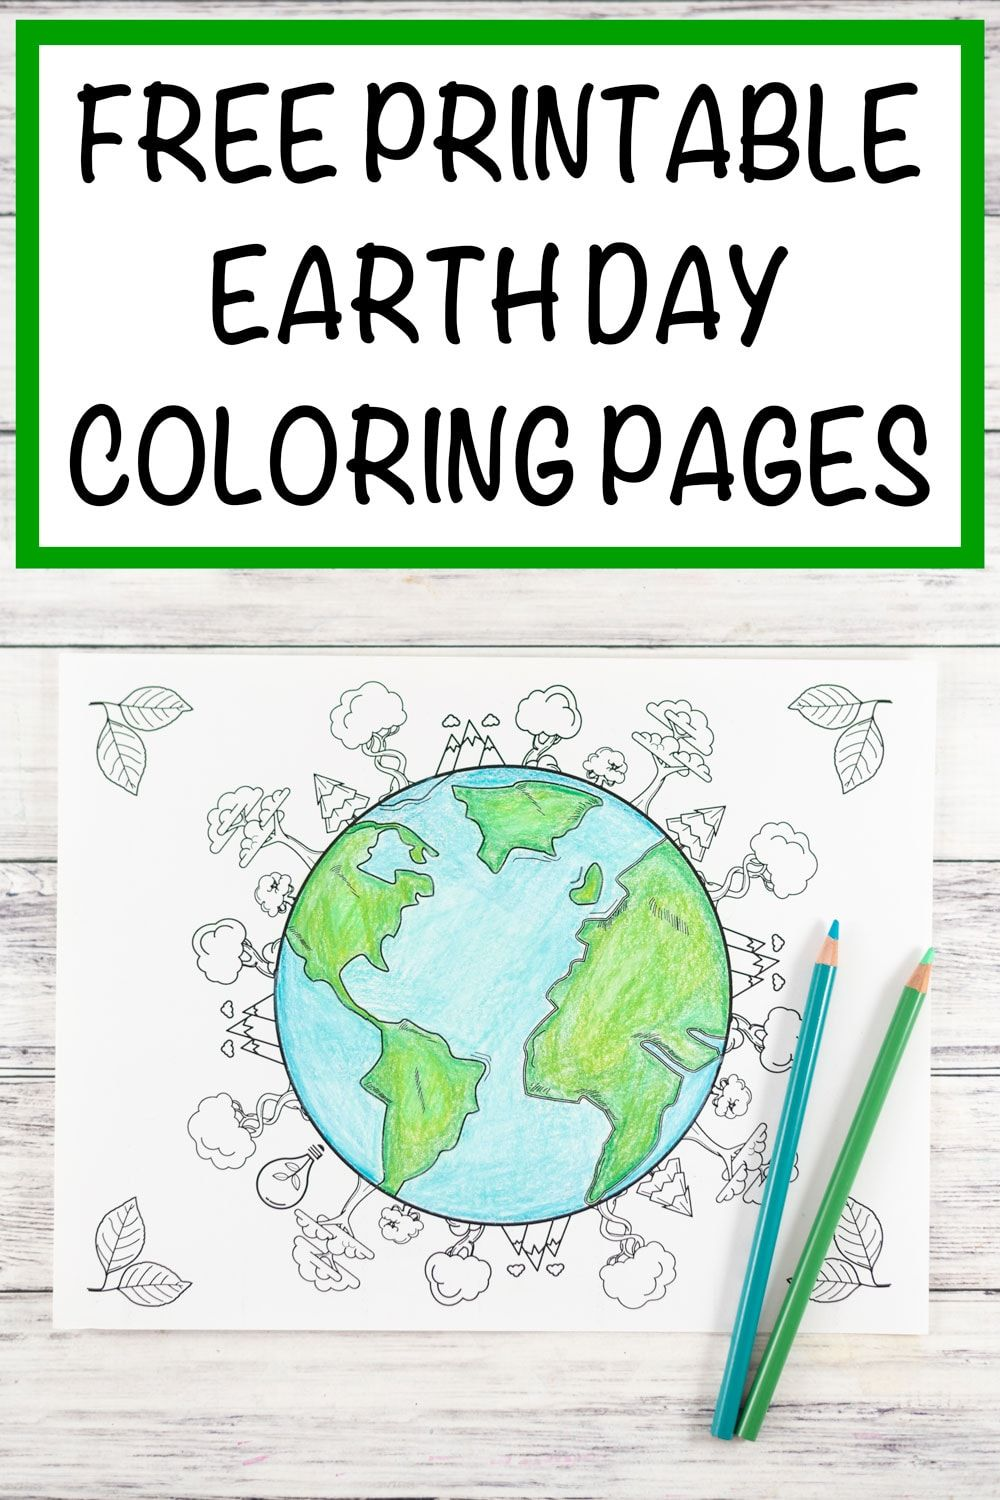 Snag 20 Free Printable Earth Day Coloring Pages Environmental Coloring Pages For Adults An Earth Day Coloring Pages Earth Coloring Pages Earth Day Worksheets